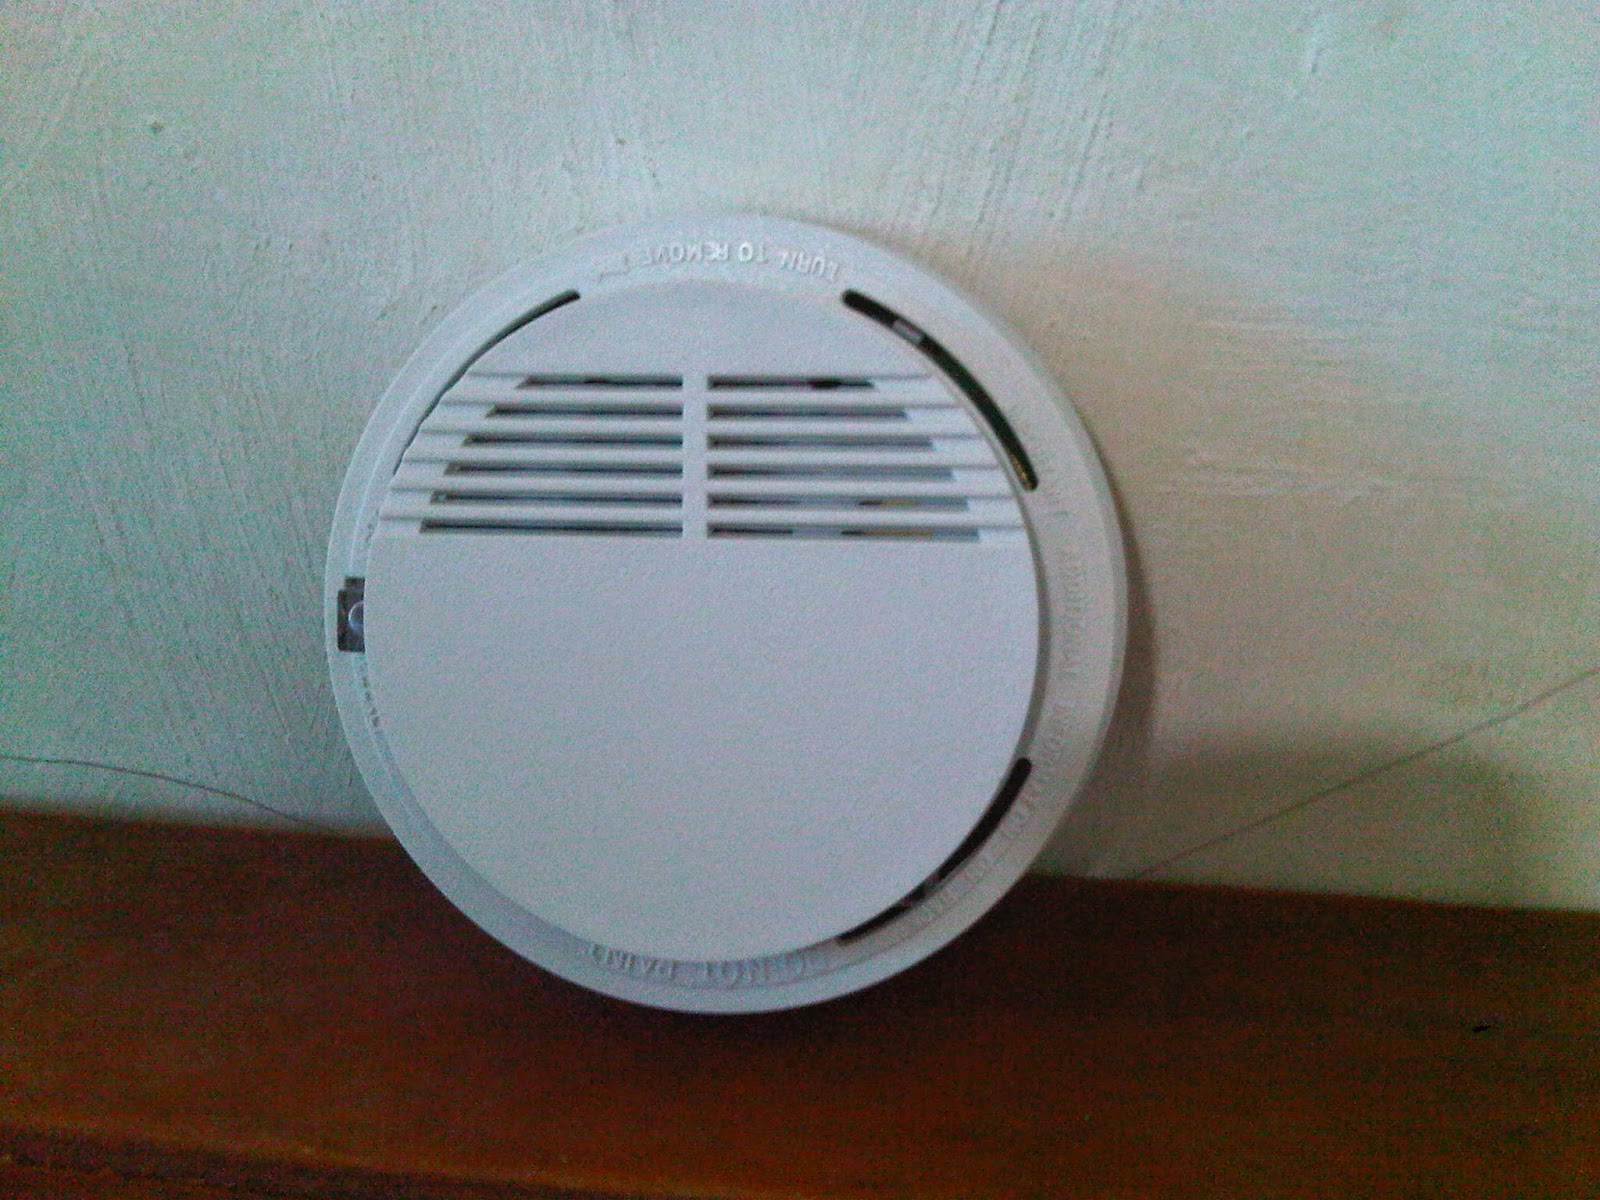 Portable Smoke Detector Smoke Detector With Battere Portable System